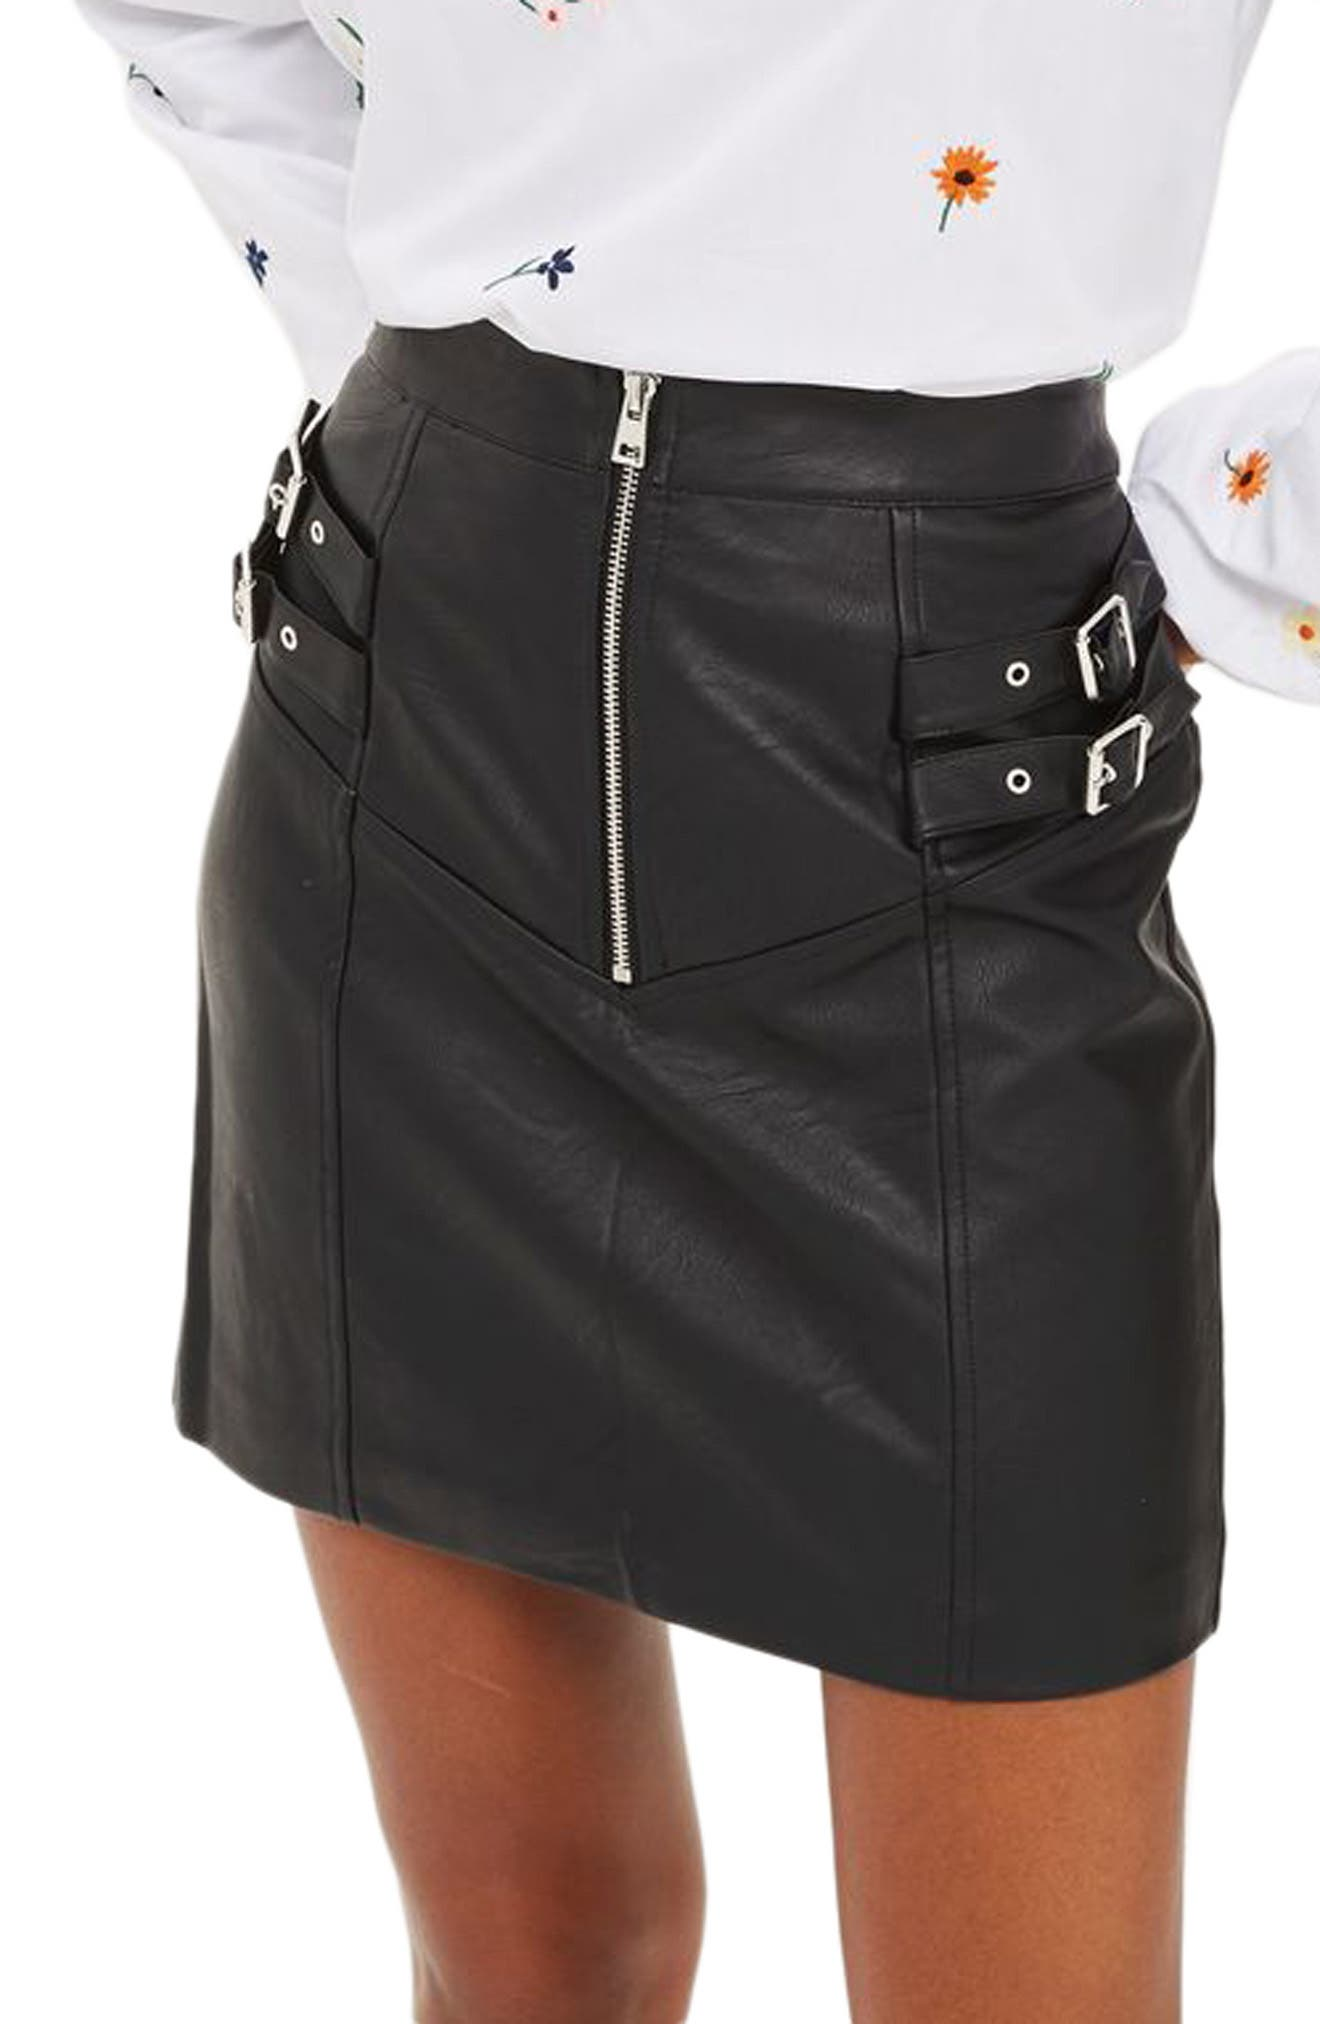 Main Image - Topshop Double Buckle Faux Leather Miniskirt